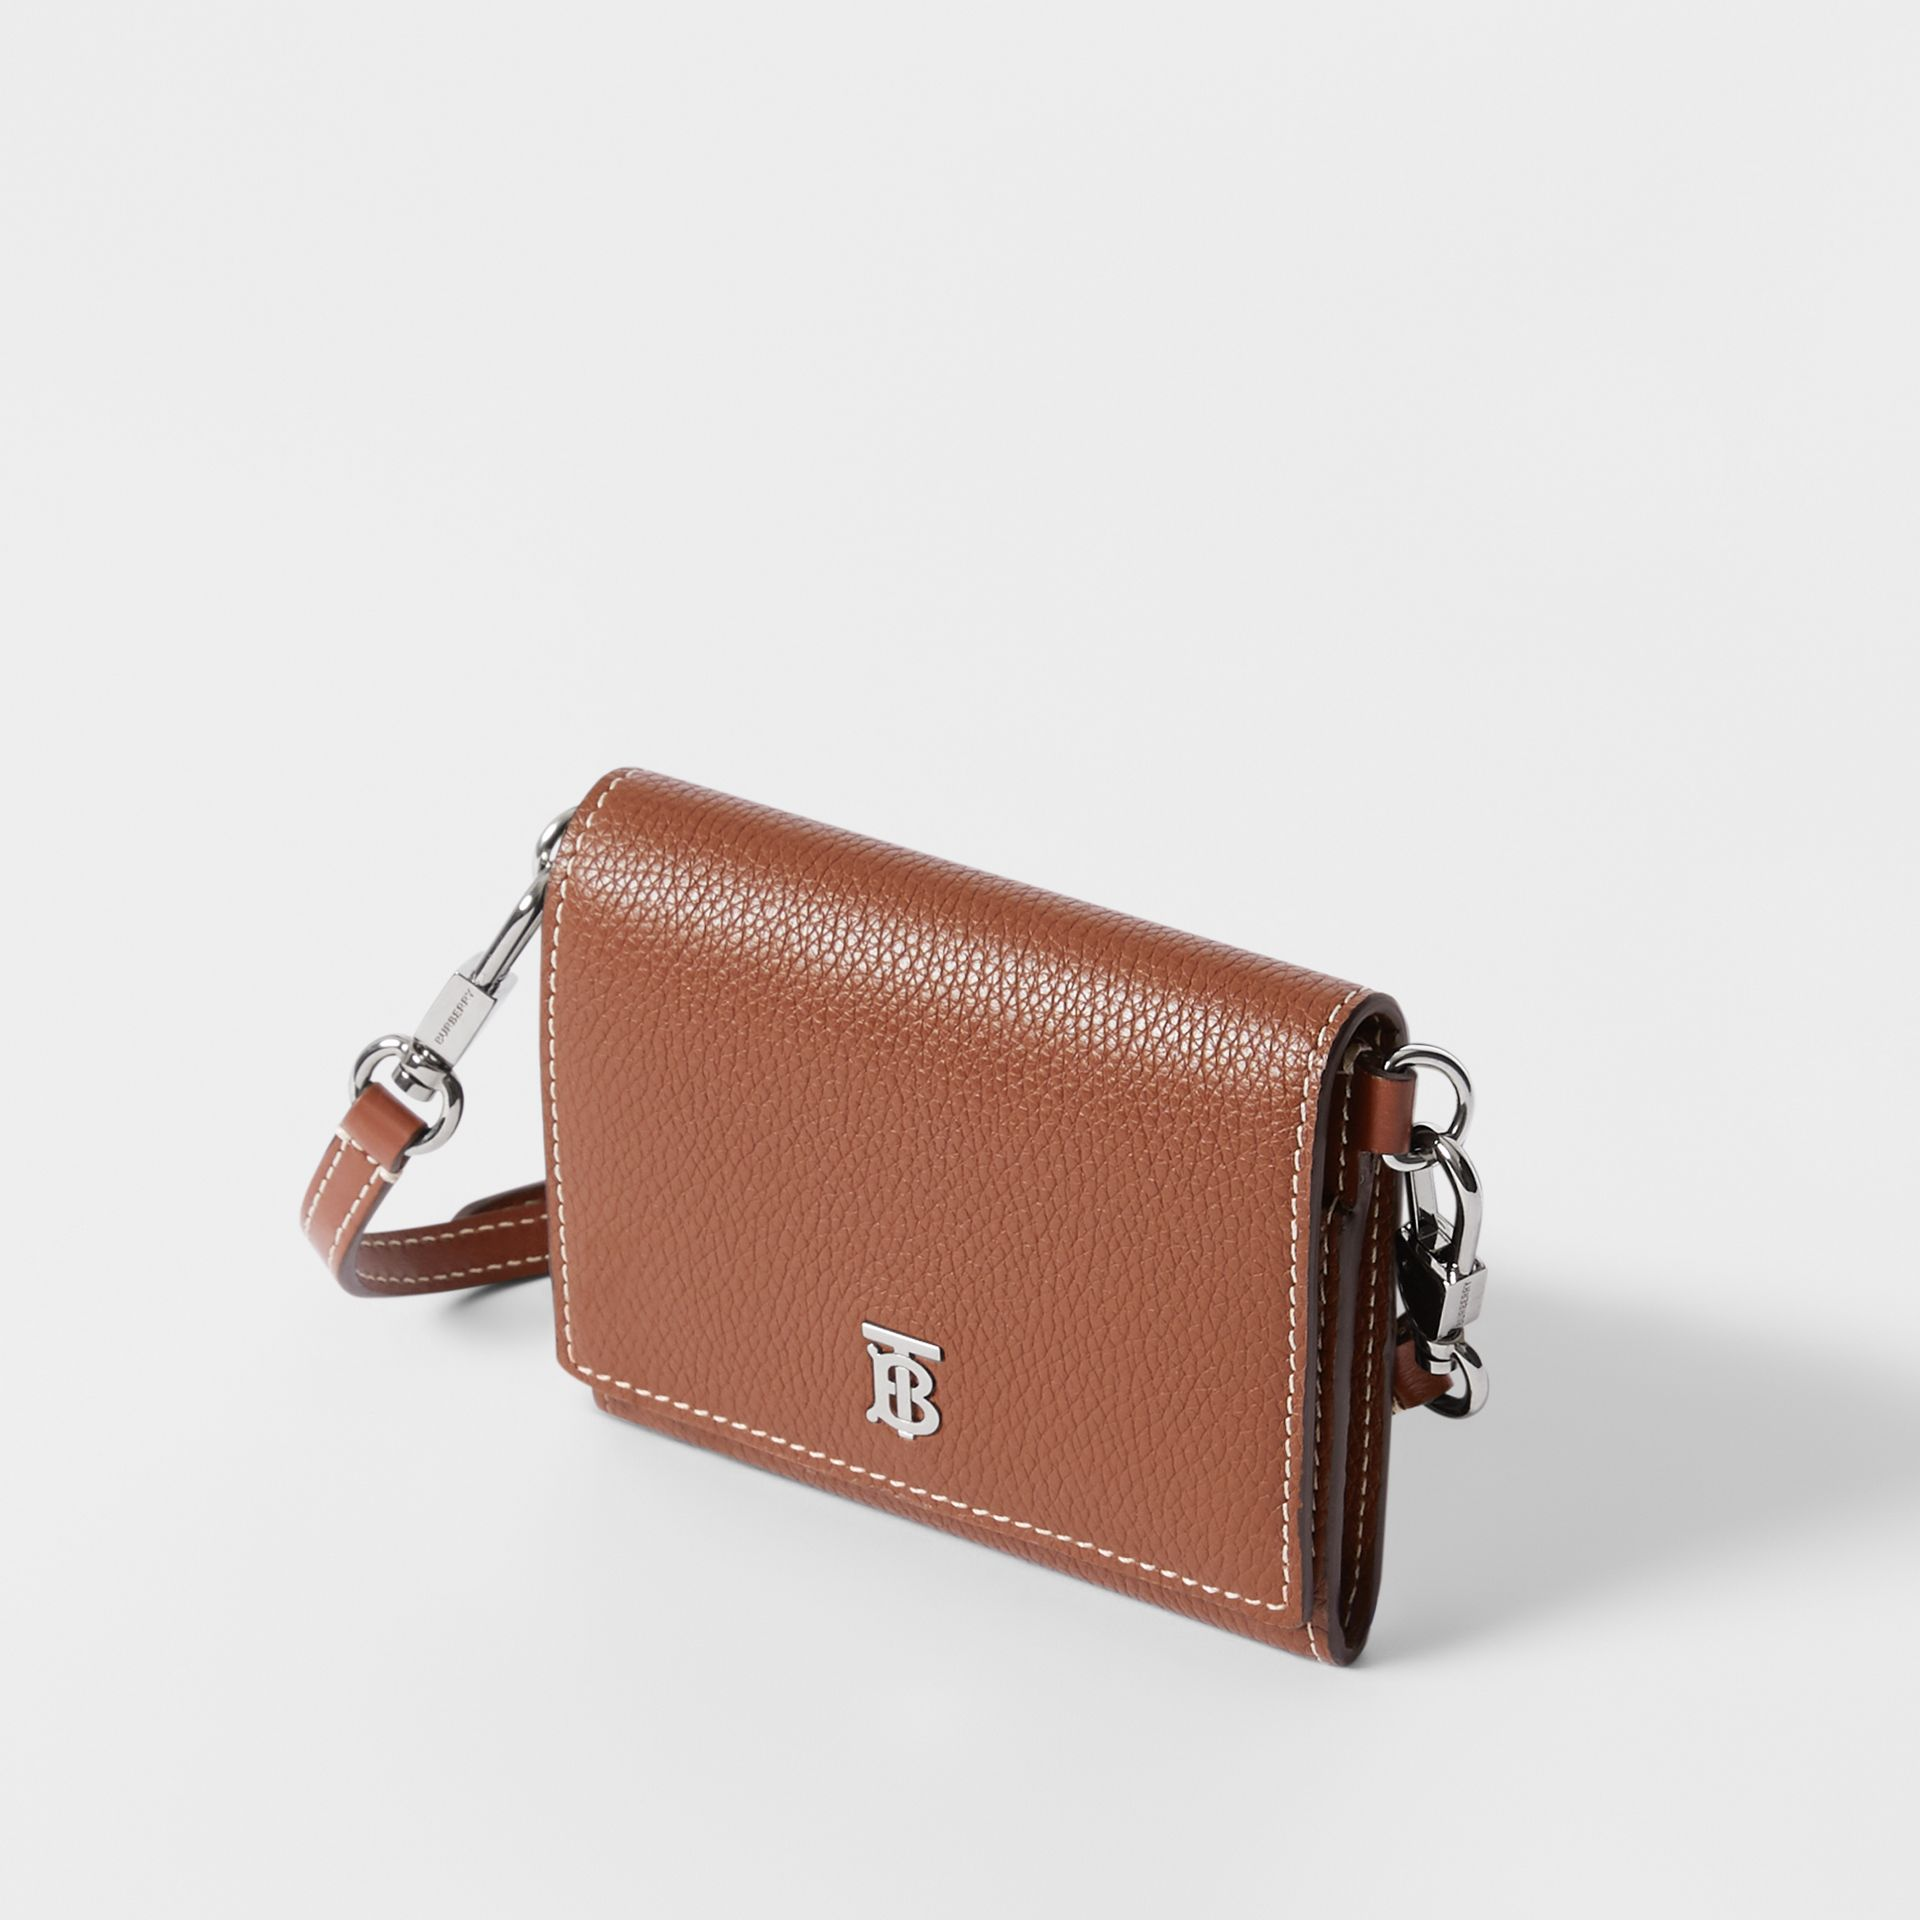 Small Grainy Leather Wallet with Detachable Strap in Tan | Burberry United Kingdom - gallery image 4